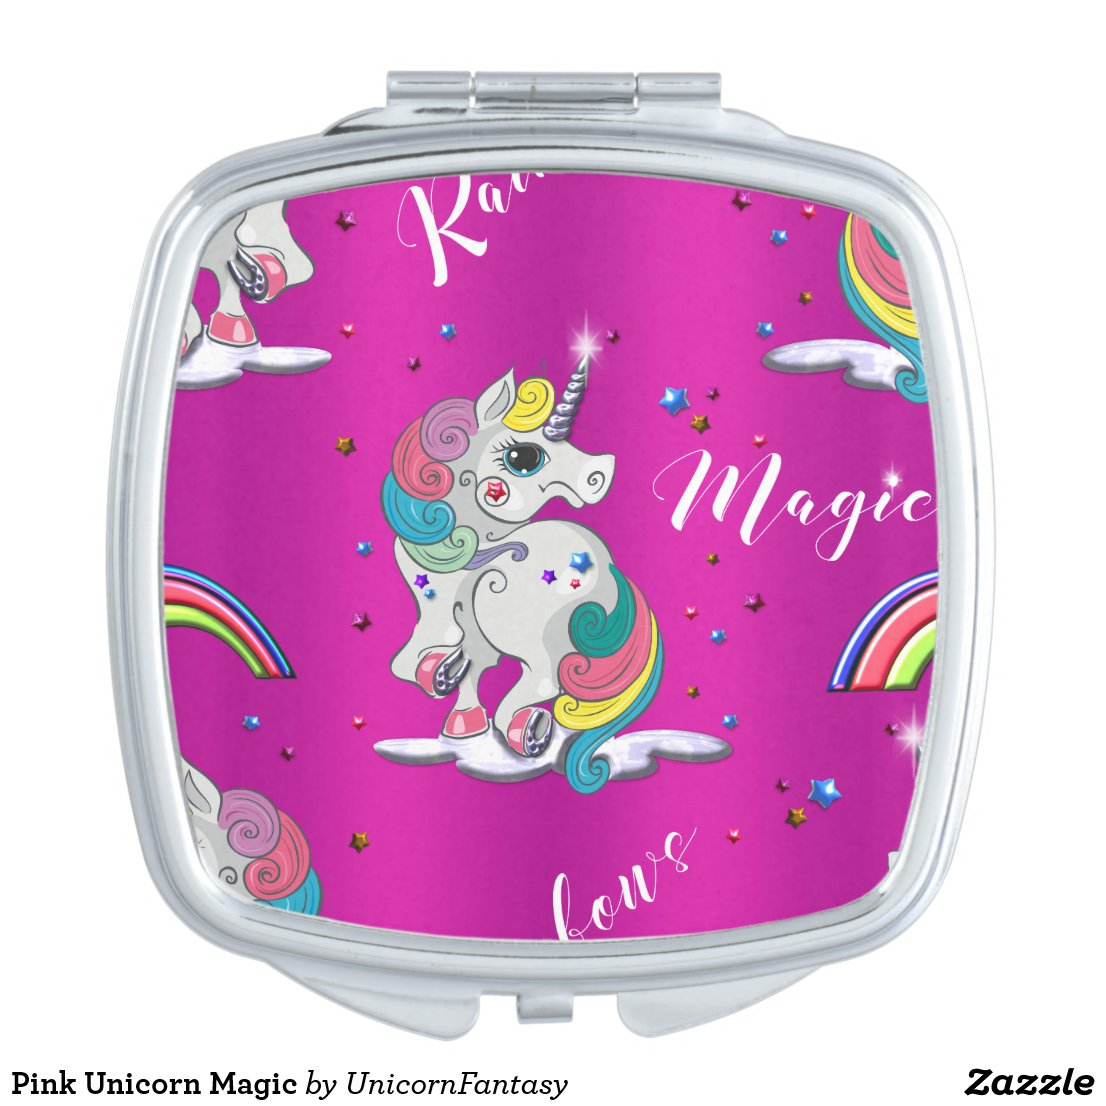 Pink Unicorn Magic Compact Mirror